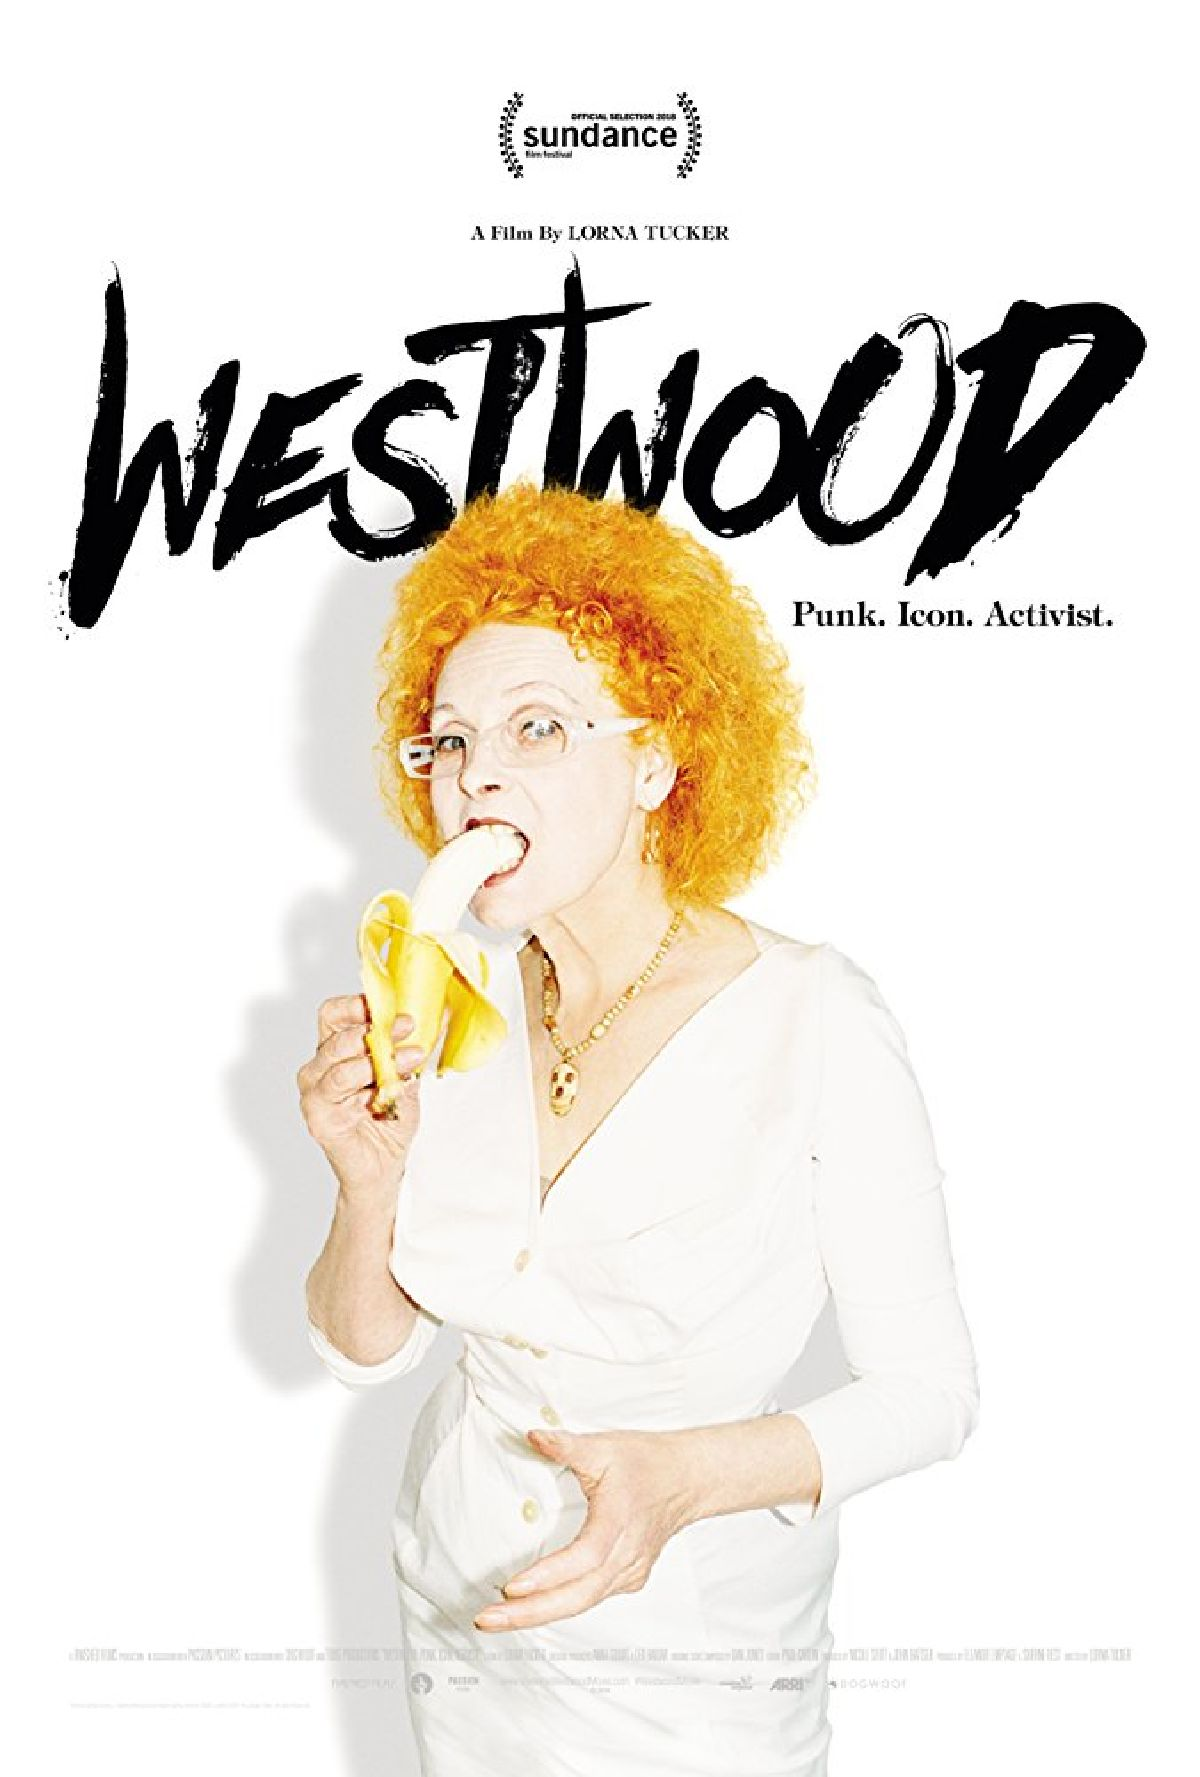 'Westwood: Punk, Icon, Activist' movie poster